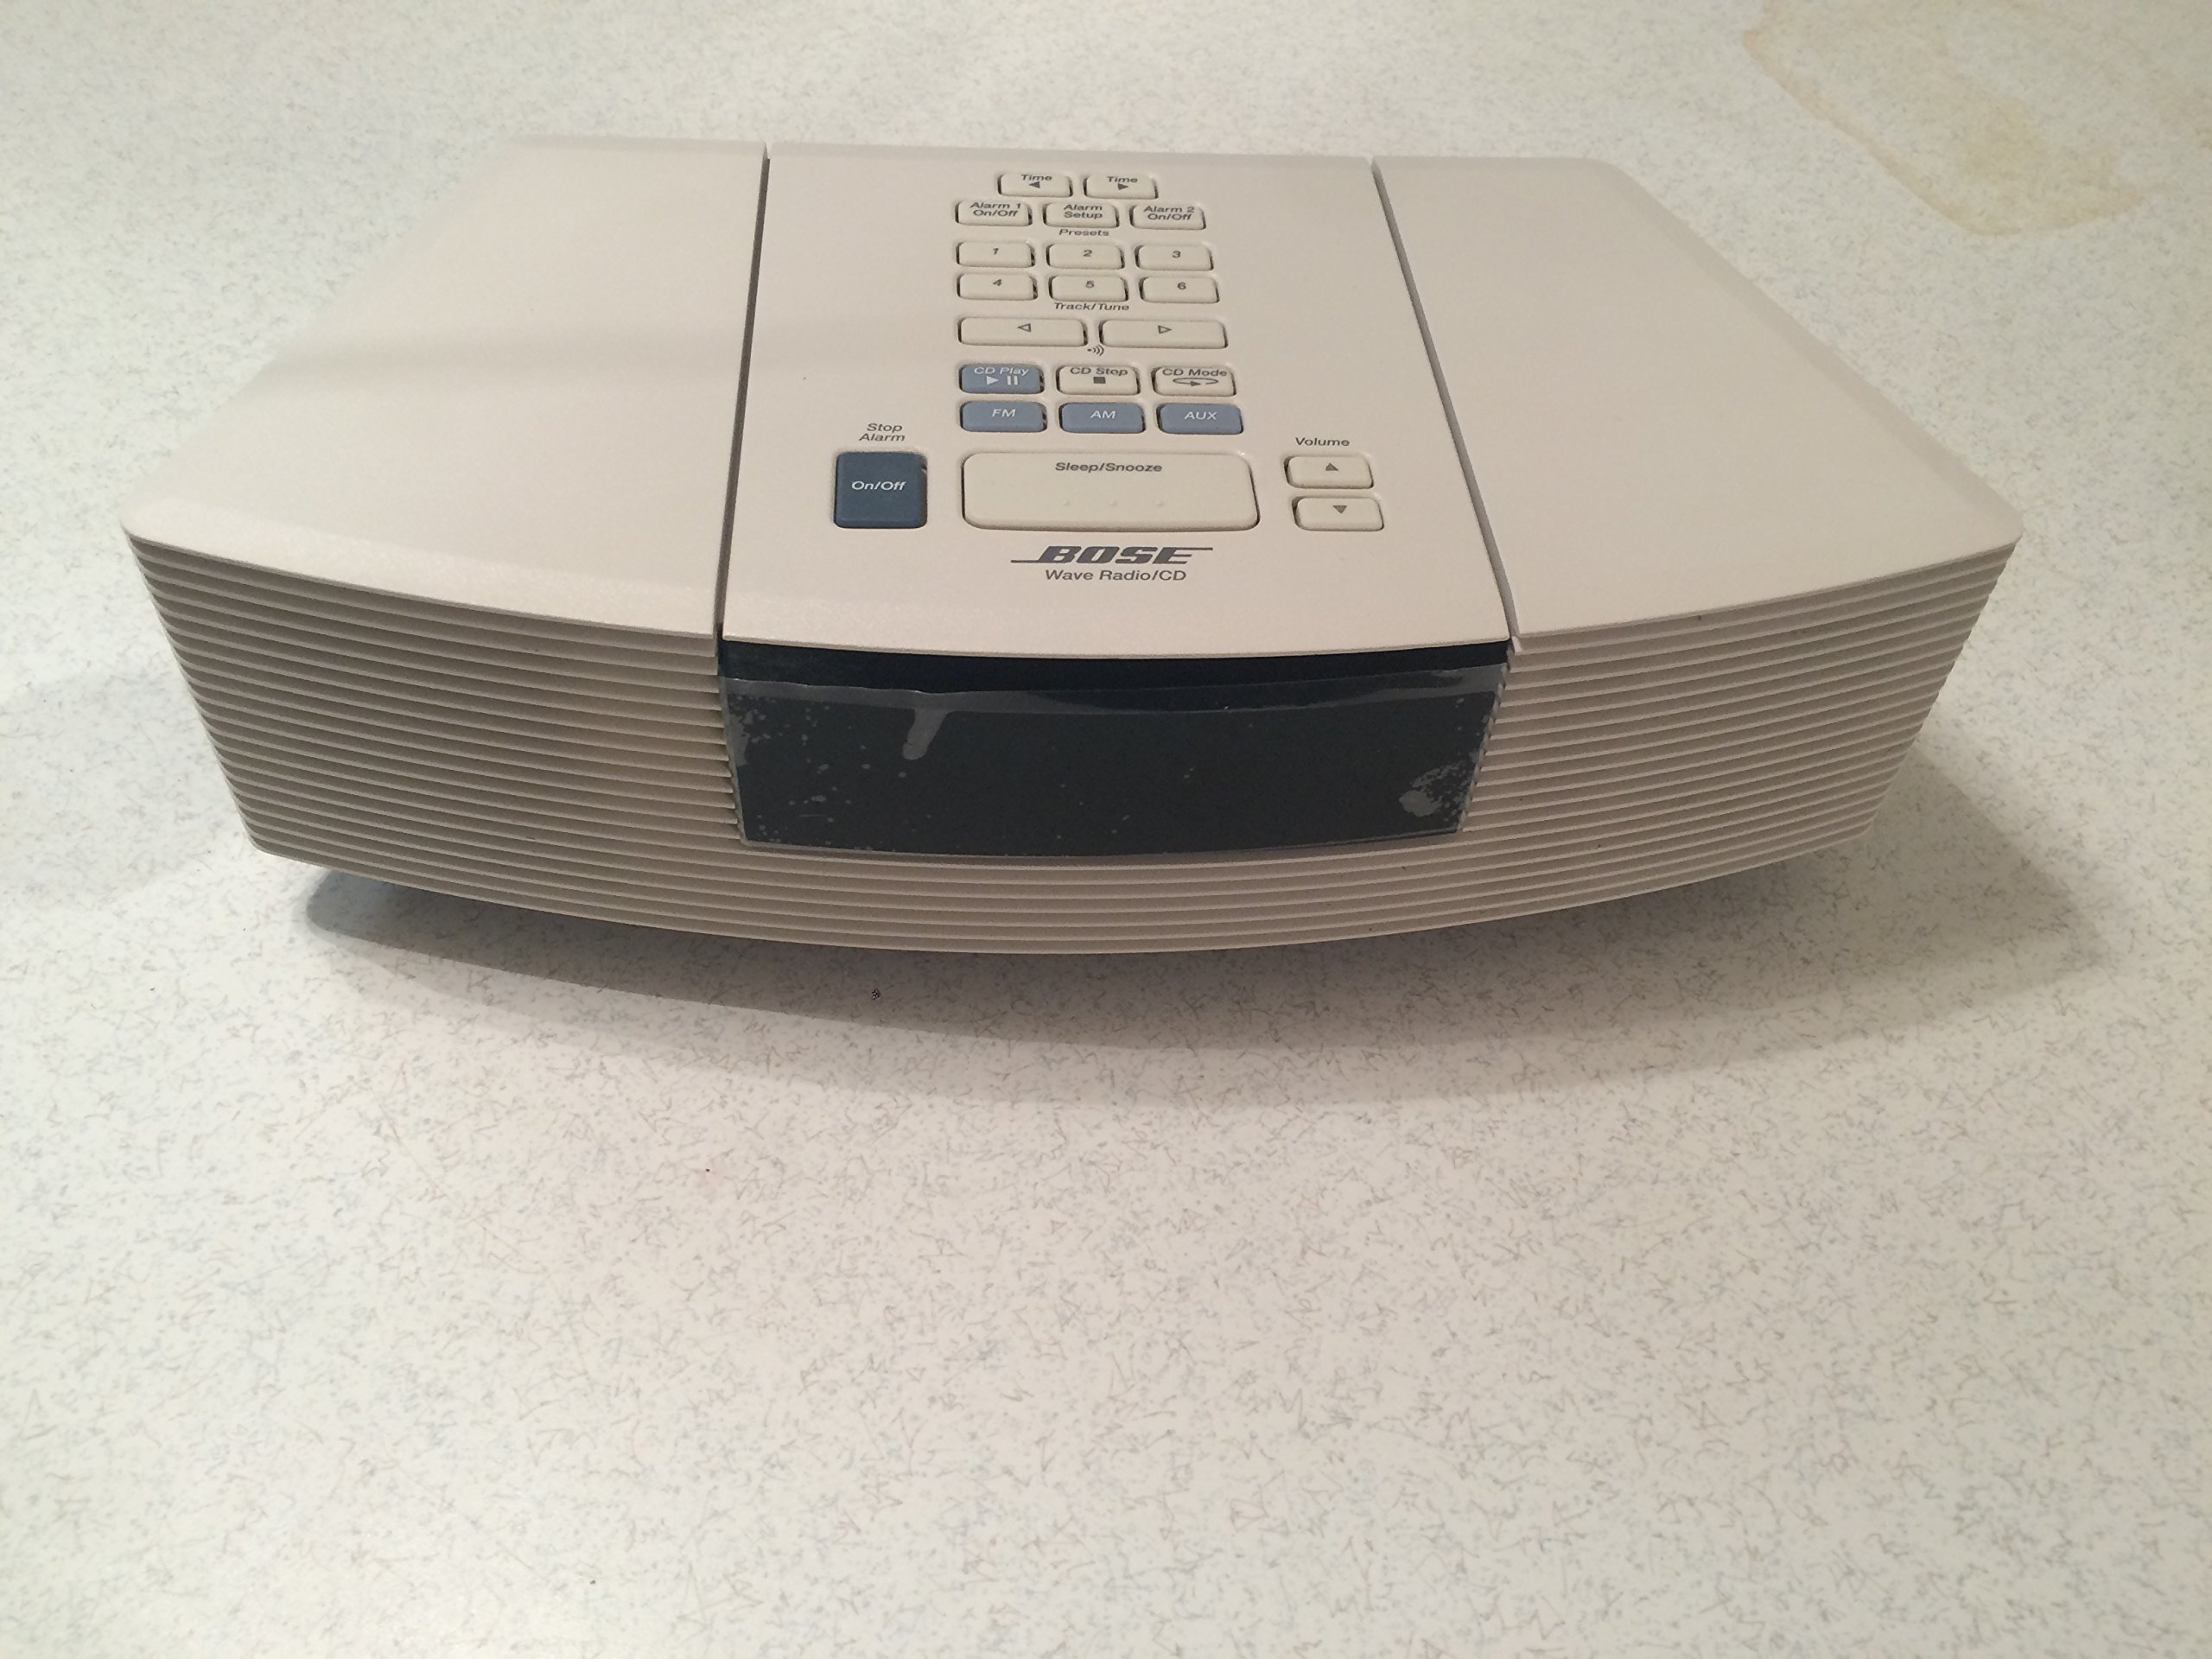 Amazon.com: Bose Wave Radio/cd Player White in Color: Home Audio & Theater